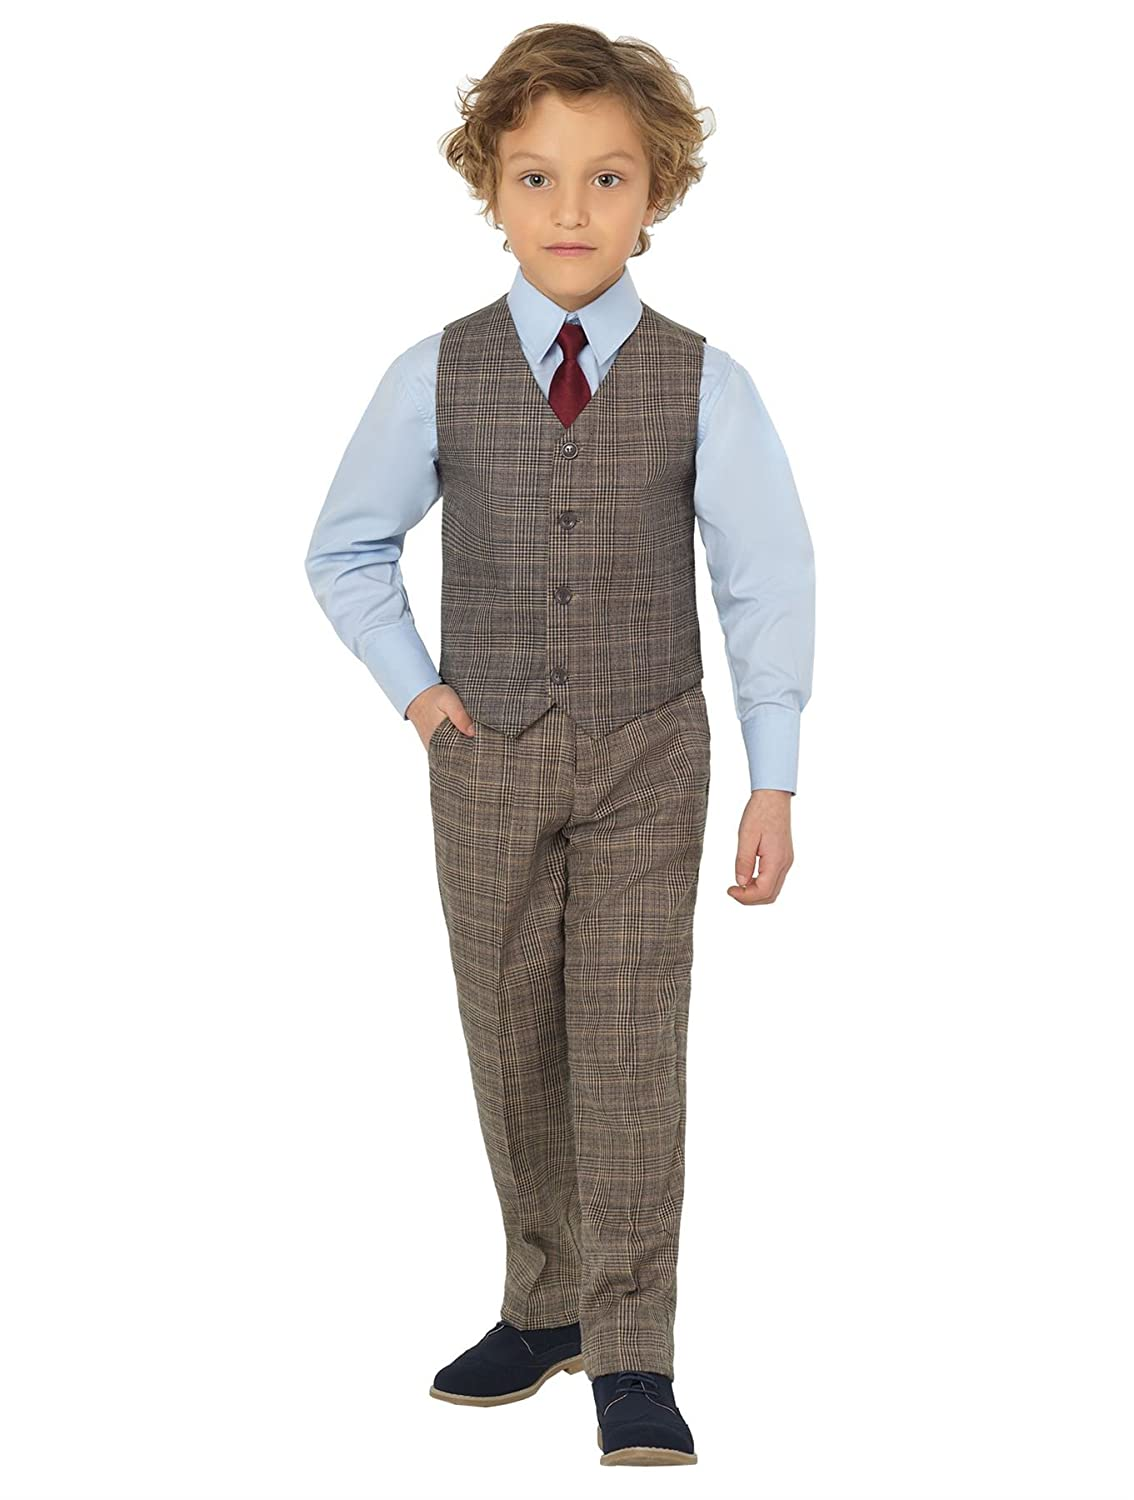 1930s Childrens Fashion: Girls, Boys, Toddler, Baby Costumes Shiny Penny Boys Suits Page boy Suits Waistcoat Suits 3 Months - 8 Years £24.99 AT vintagedancer.com